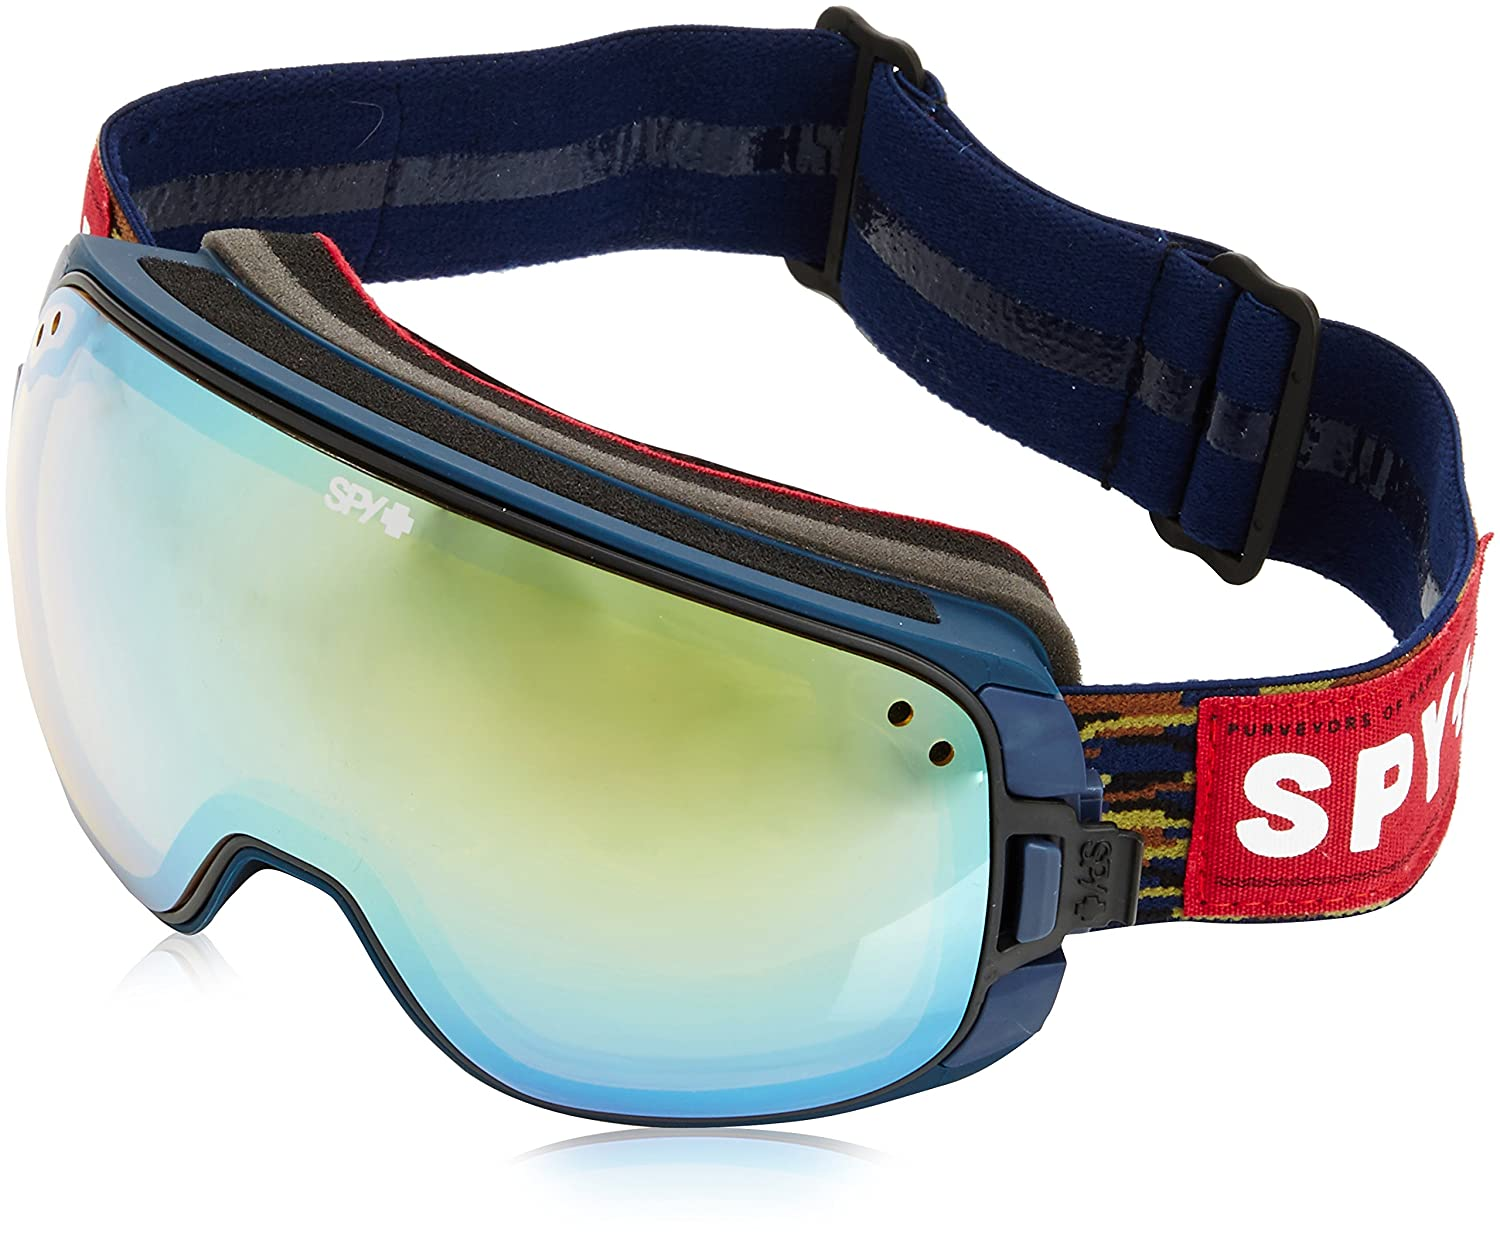 Spy Snow Goggle Bravo - Party Fatigue (with/Bonus Lens) - Gafas de esquí, color negro, talla única: Amazon.es: Deportes y aire libre